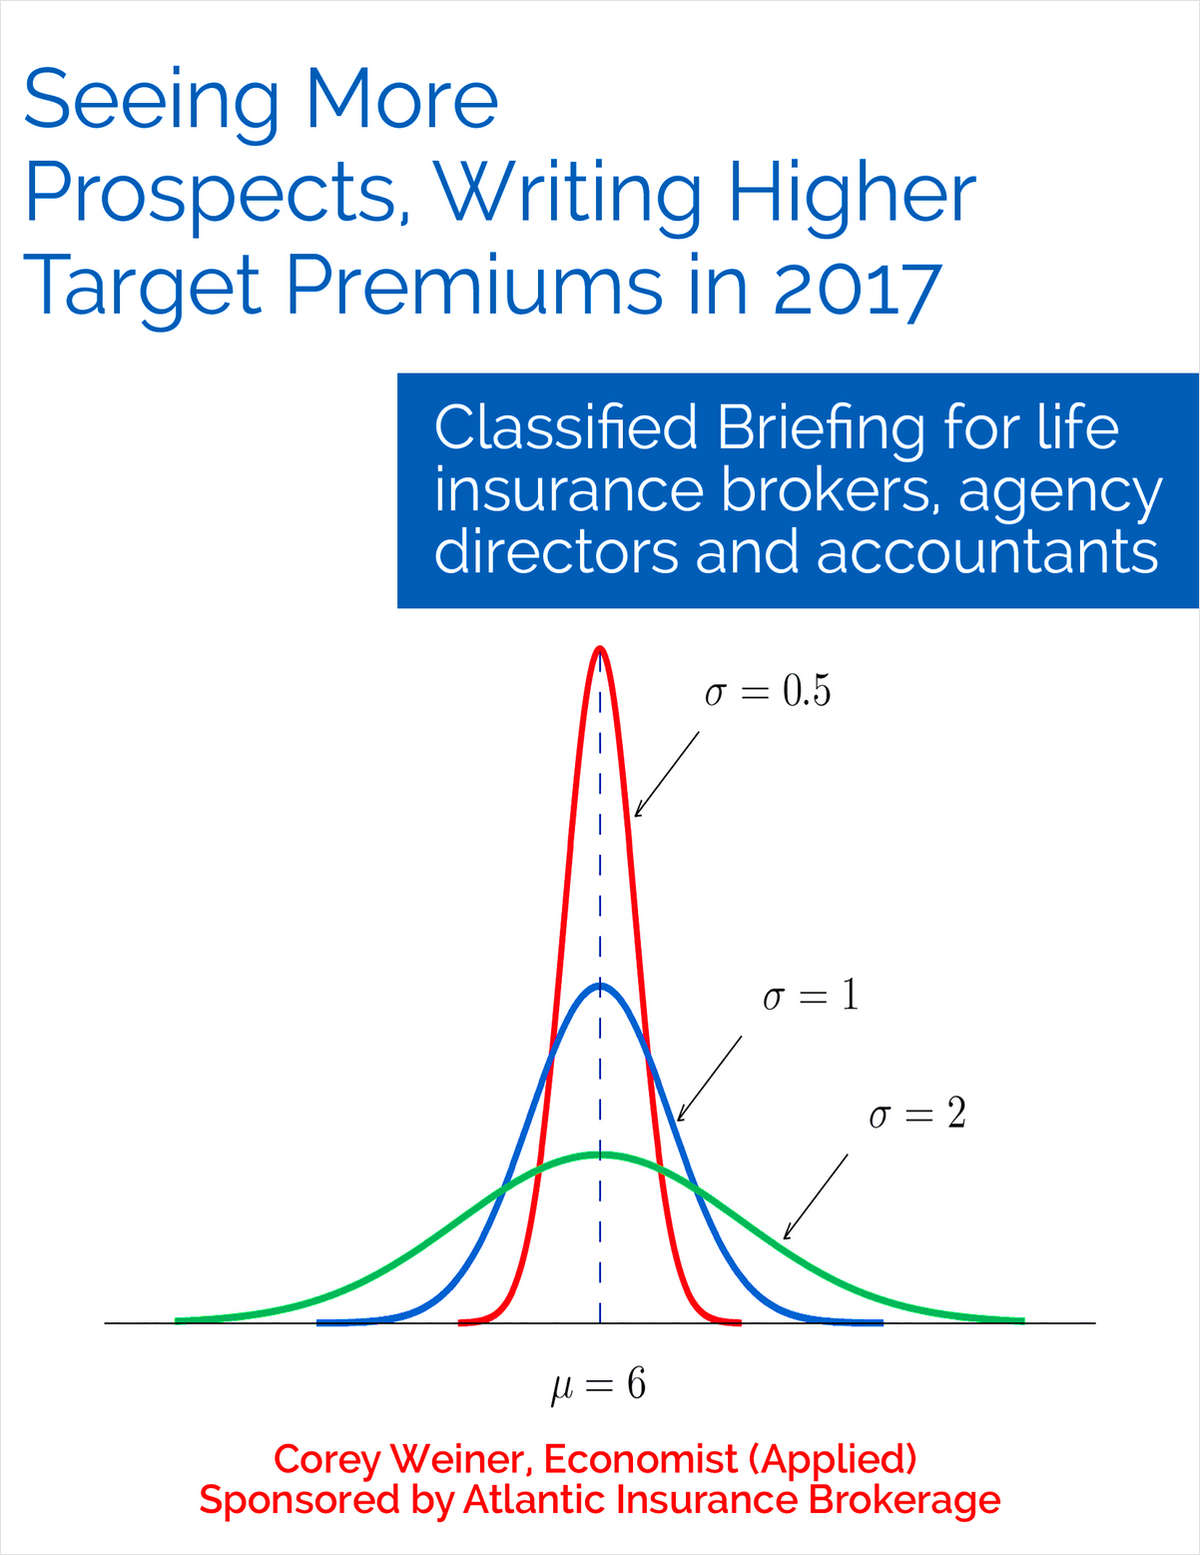 Seeing More Prospects, Writing Higher Target Premiums in 2017